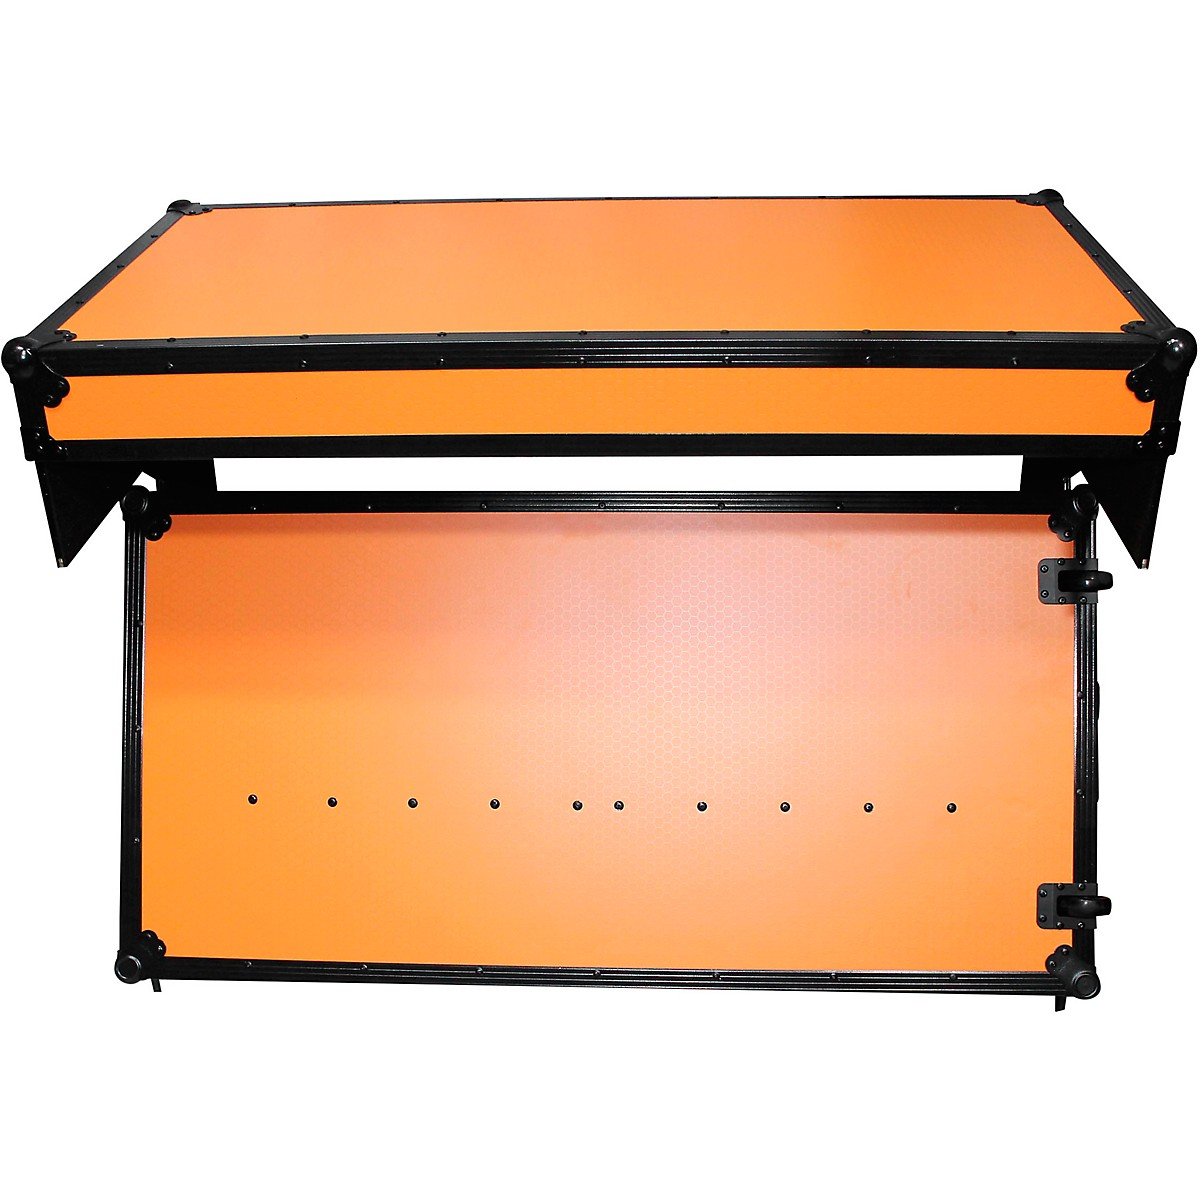 ProX Portable Z-Style Dj Table Flight Case - Orange/Black (XS-ZTABLEOB)